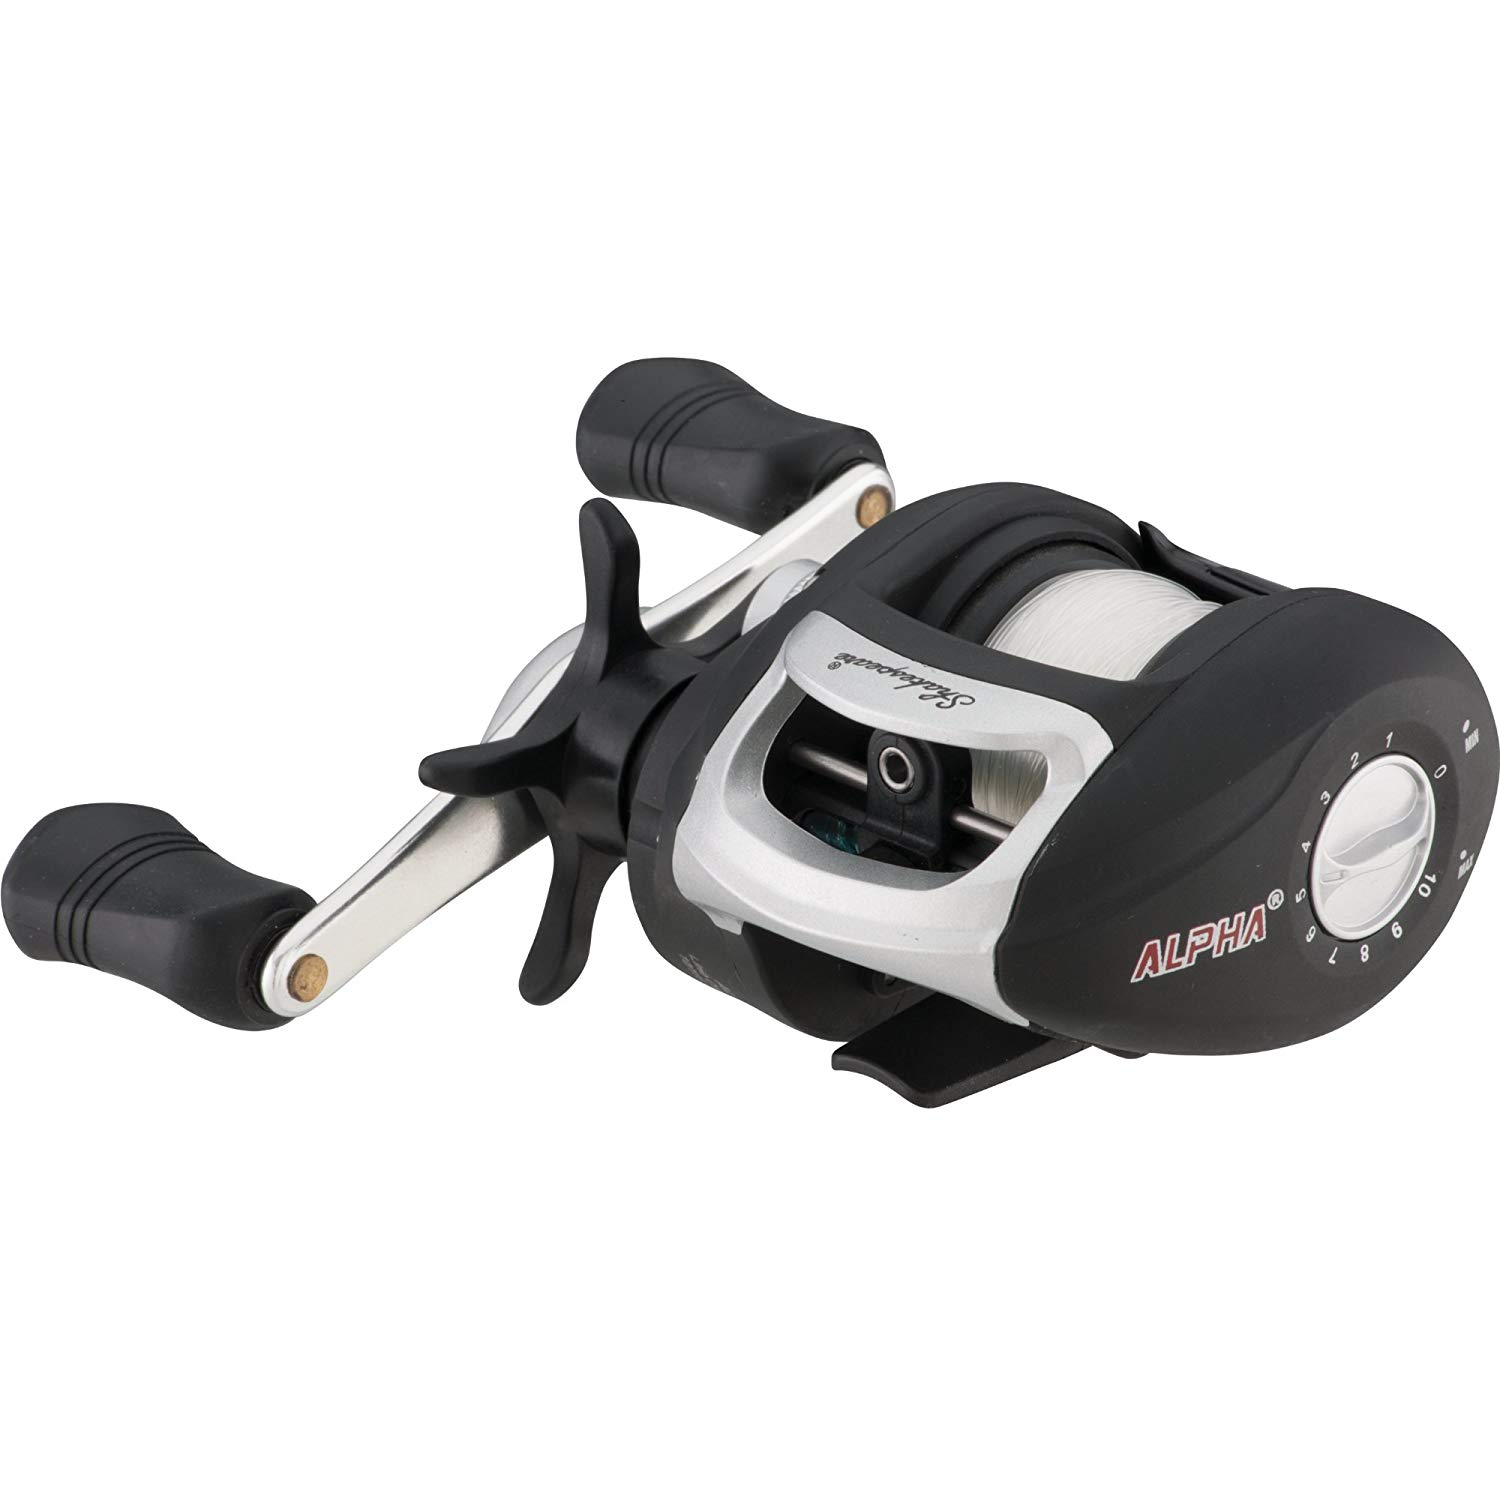 Cheap Shakespeare Fishing Reel Parts, find Shakespeare Fishing Reel